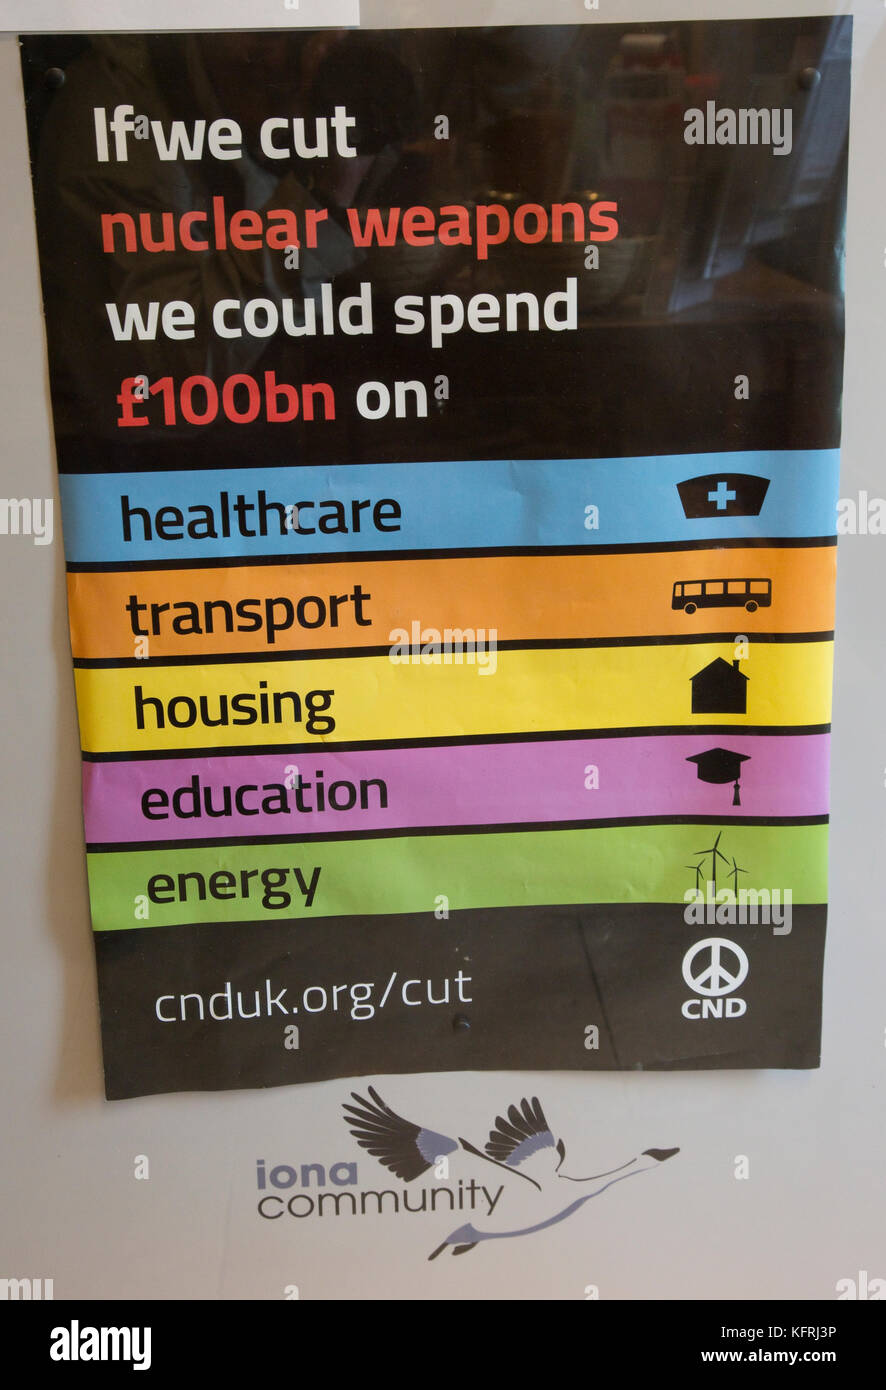 Iona Community poster cut nuclear weapons help society Scotland Stock Photo